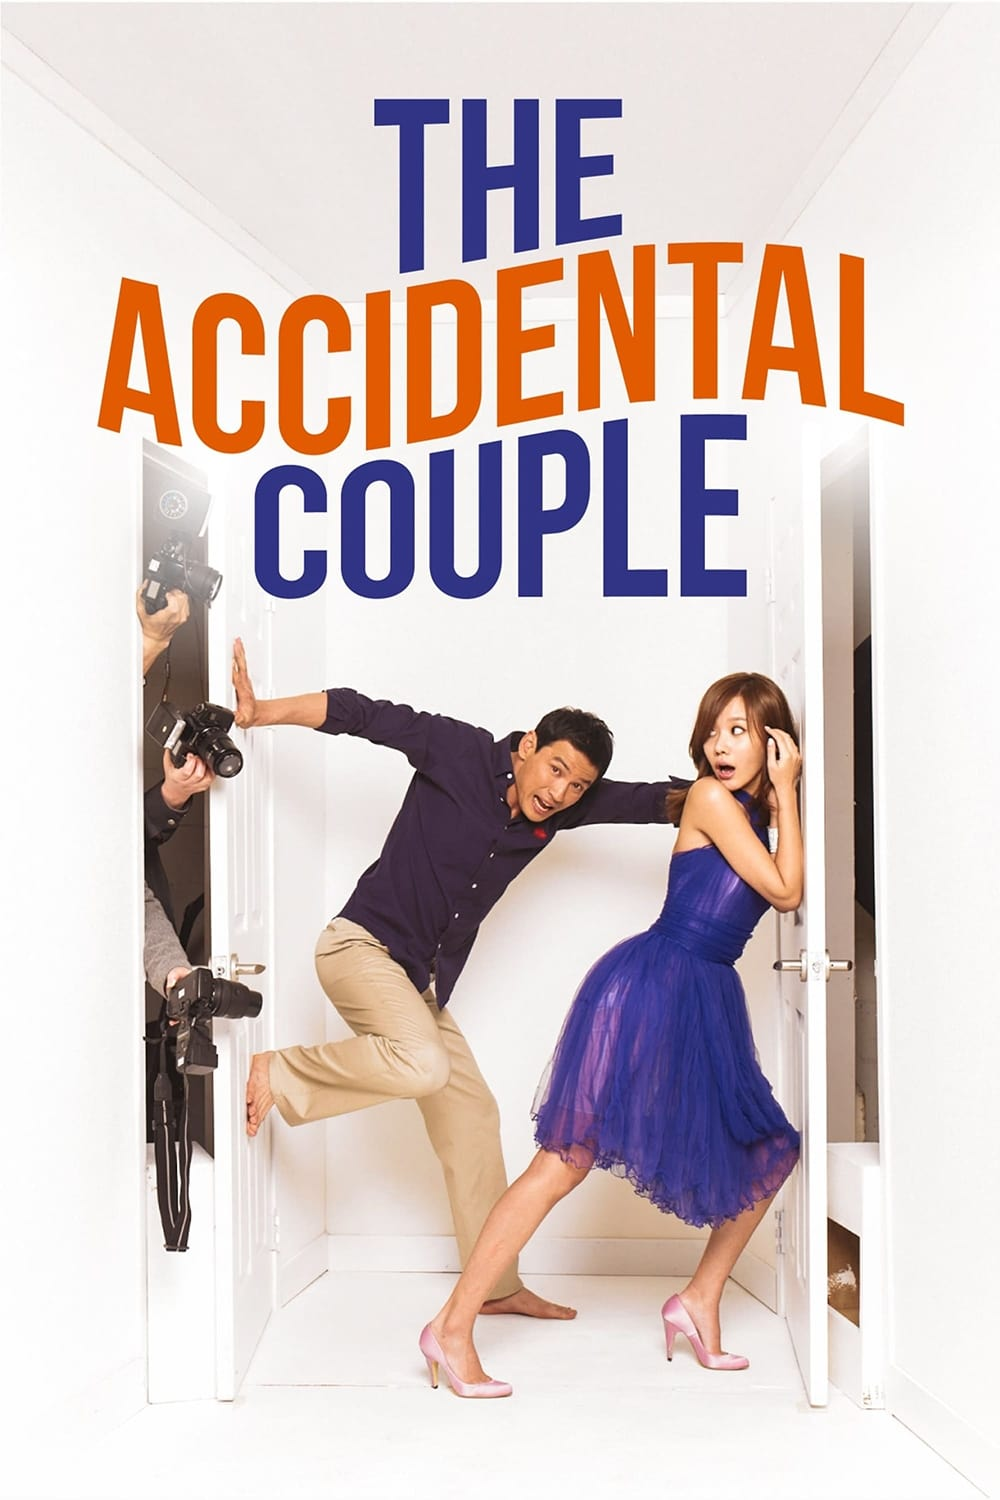 The Accidental Couple (2009)